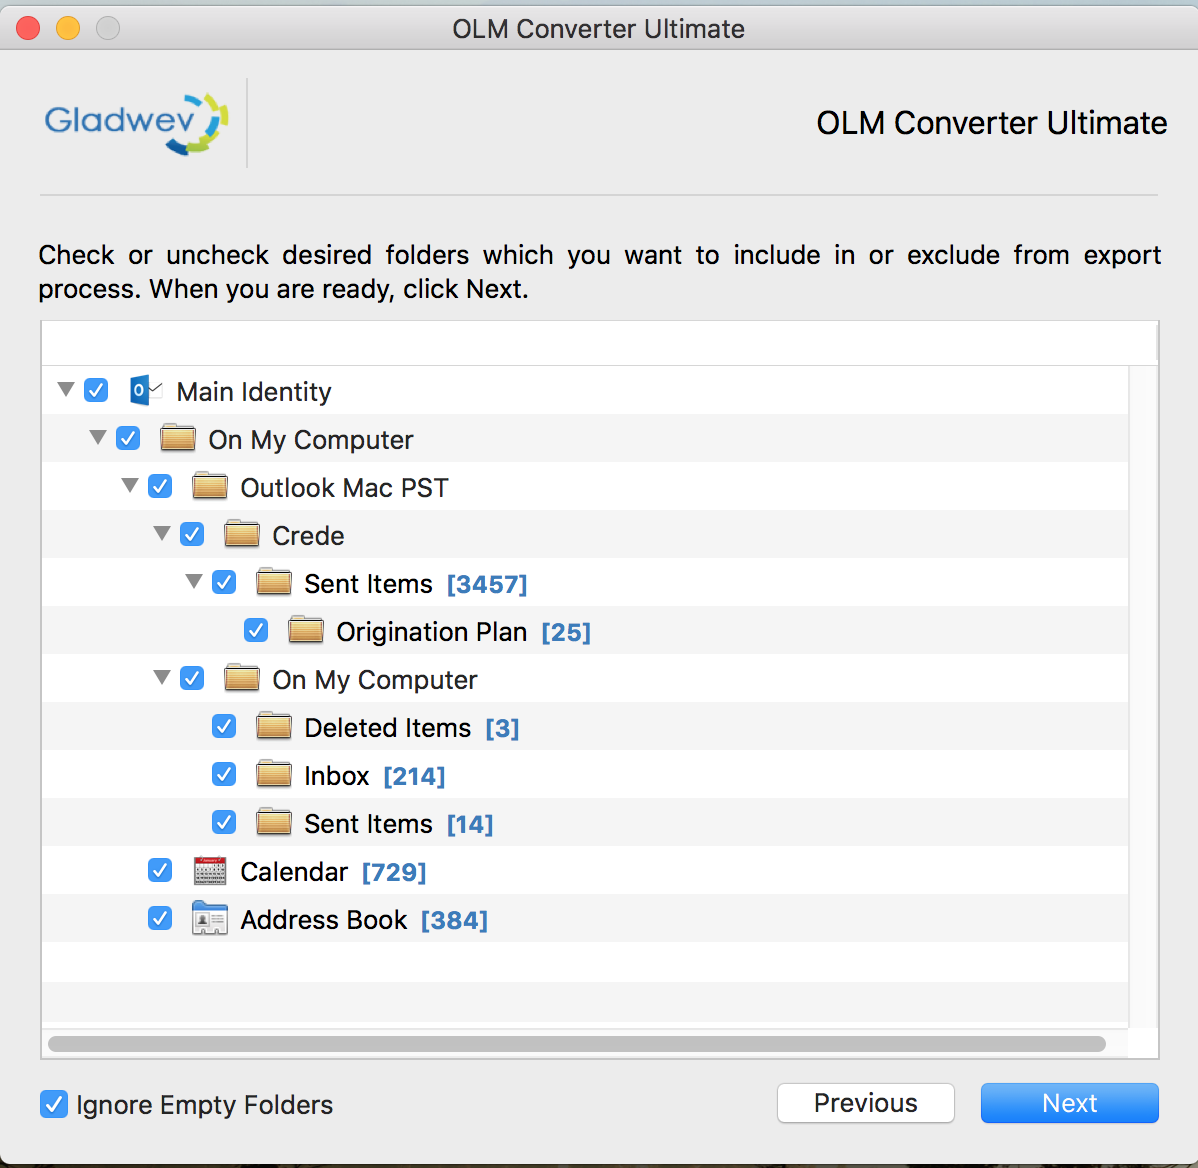 How to Convert Outlook 2011 to Mac Mail? Install OLM Converter Ultimate